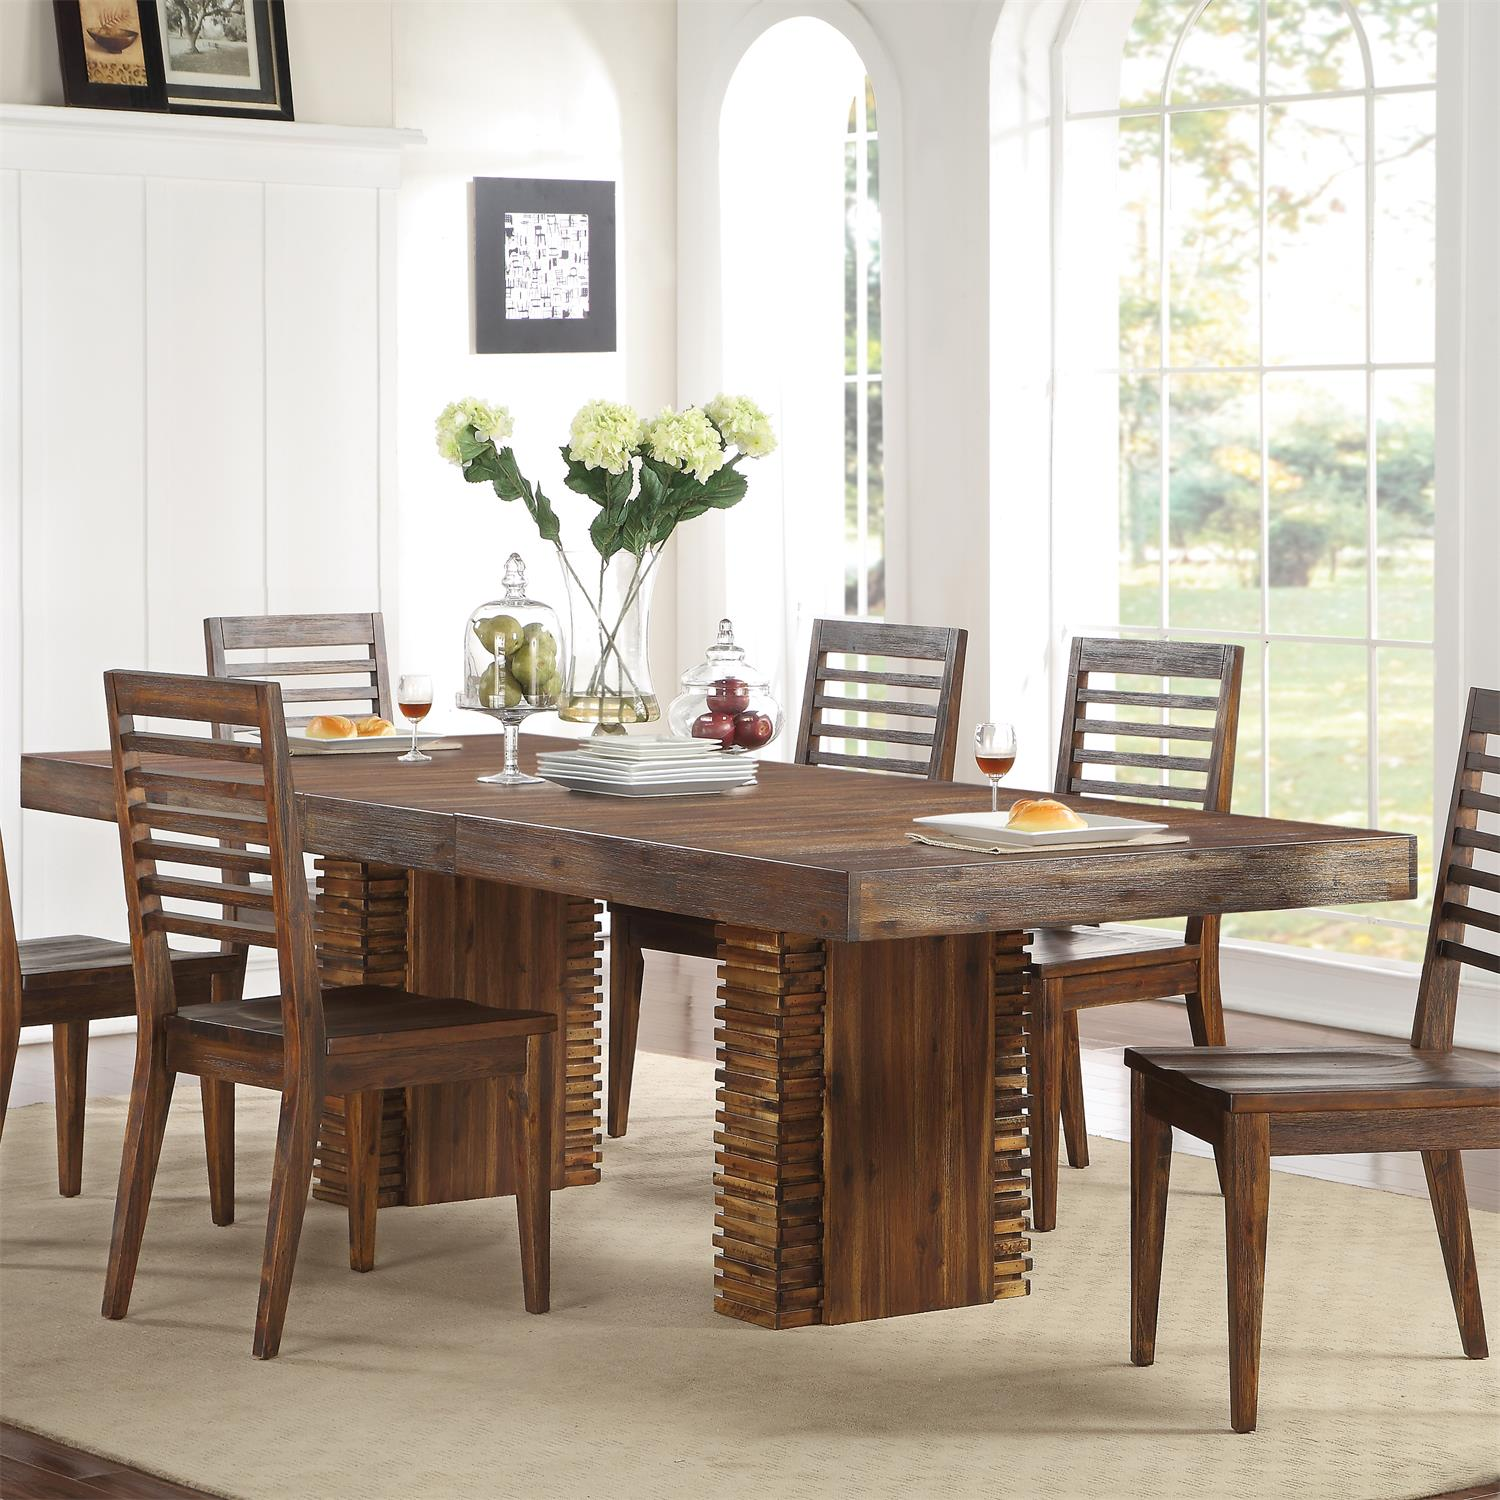 modern gatherings rectangular dining table by riverside lewis furniture store. Black Bedroom Furniture Sets. Home Design Ideas